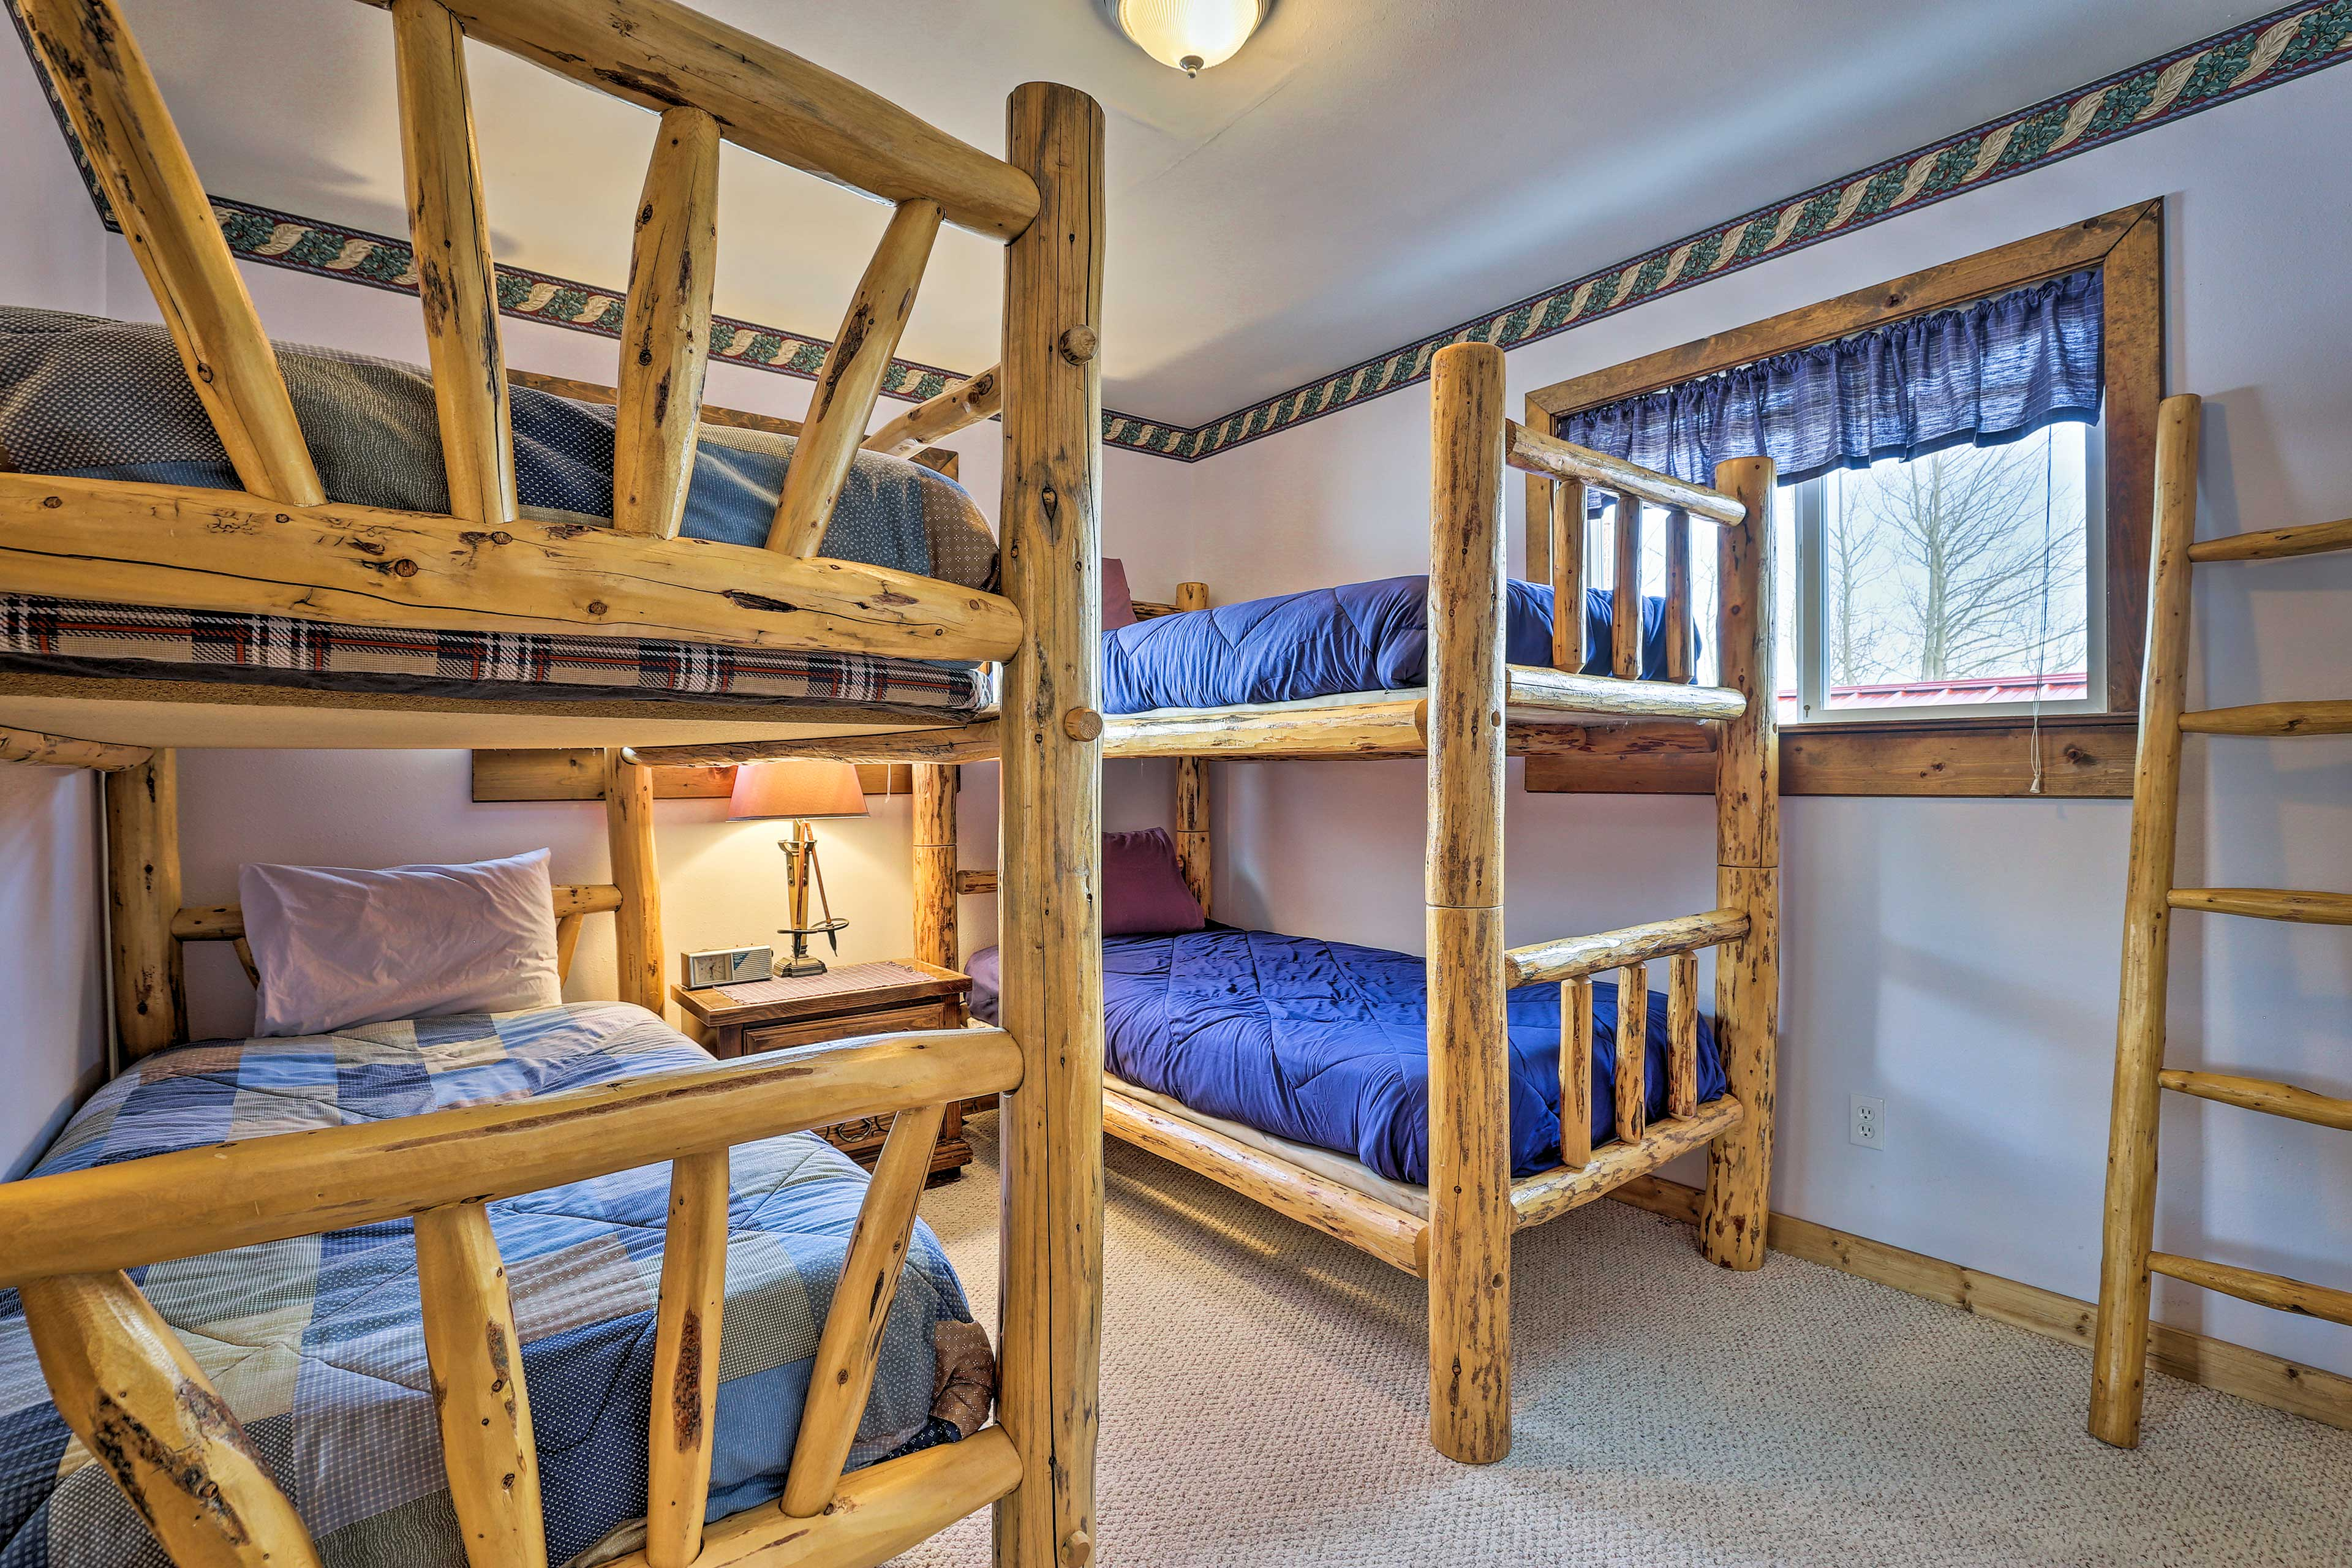 Kids will love staying in this cozy room.